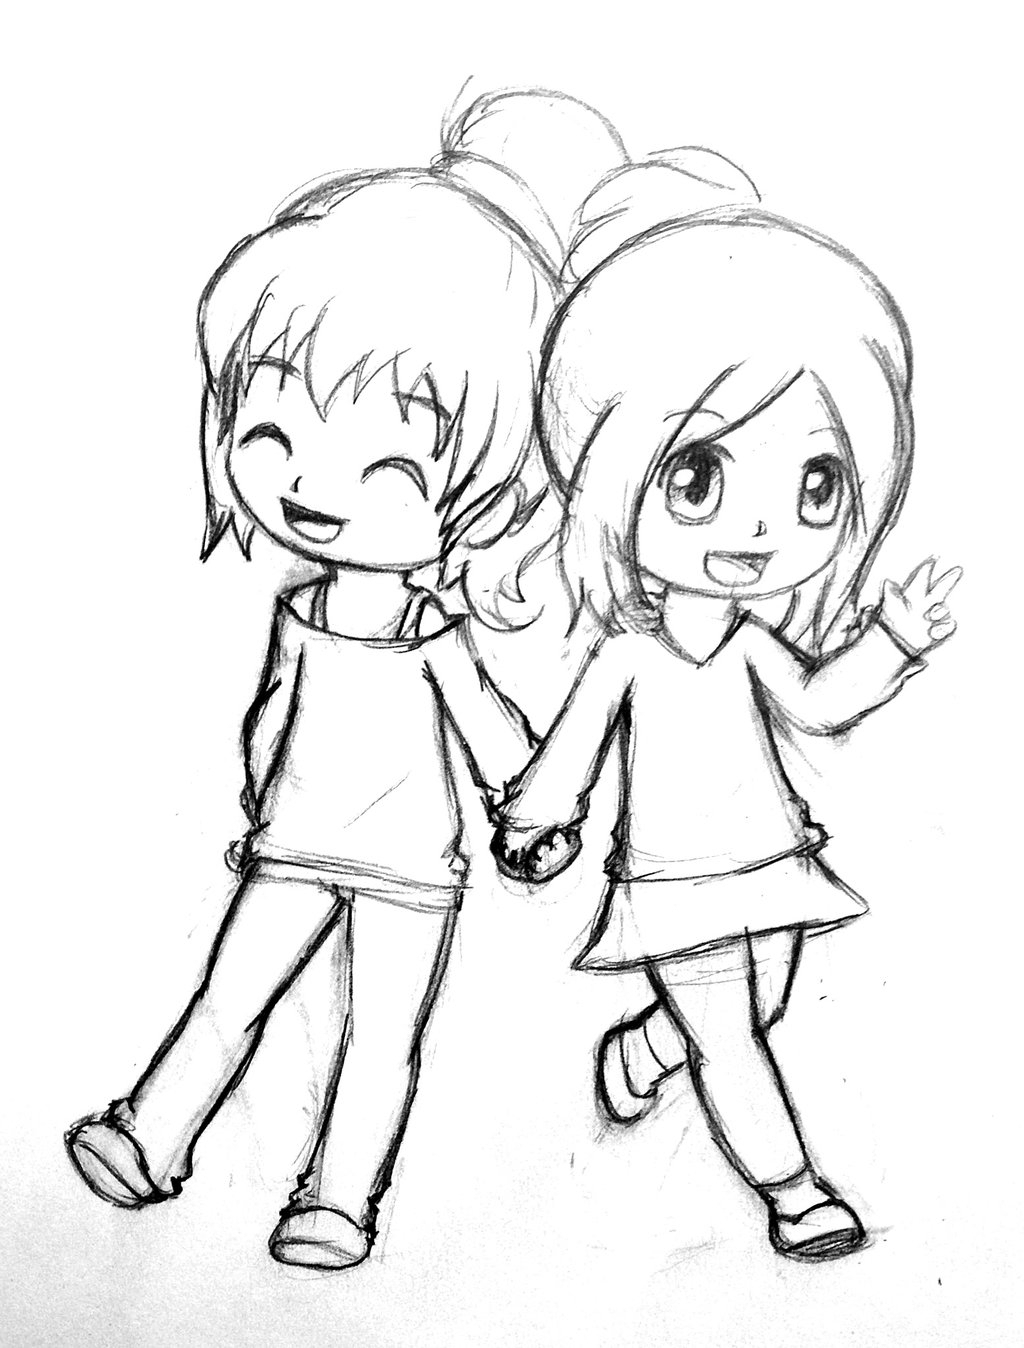 1024x1348 Pencil Sketch Of Boy And Girl With Umbrella Best Friend Hug Boy